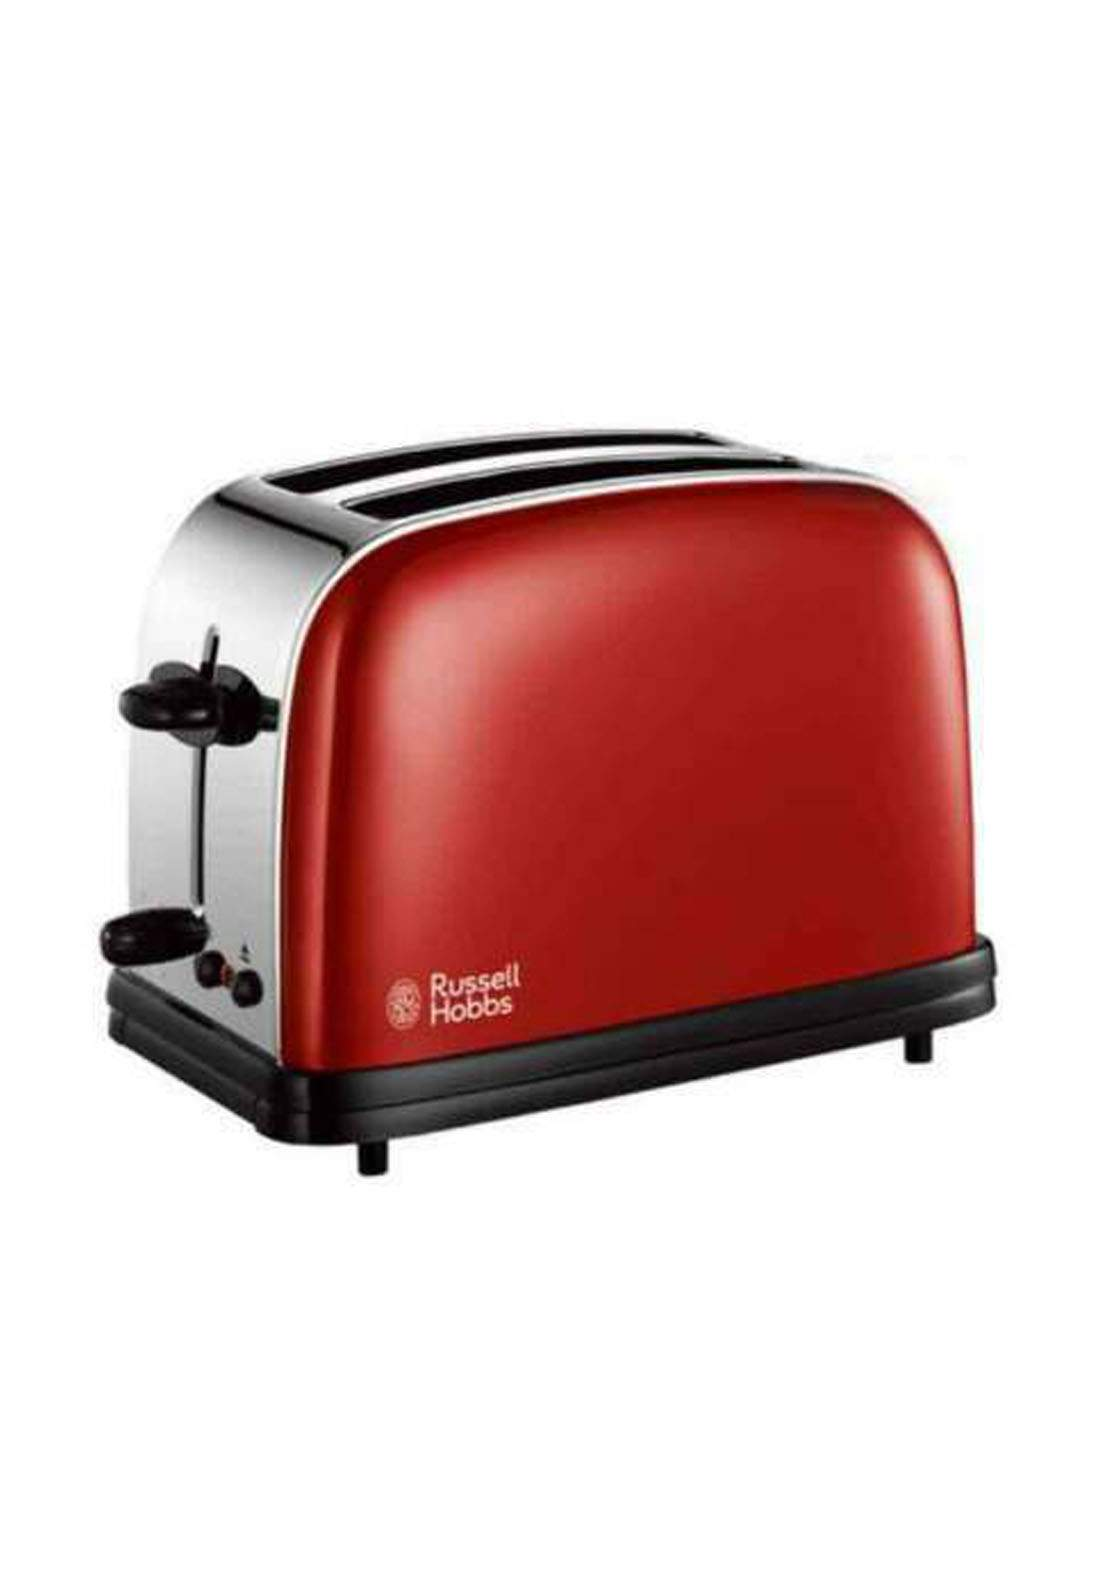 Russell hobbs 18951 Toaster Red  تويستر